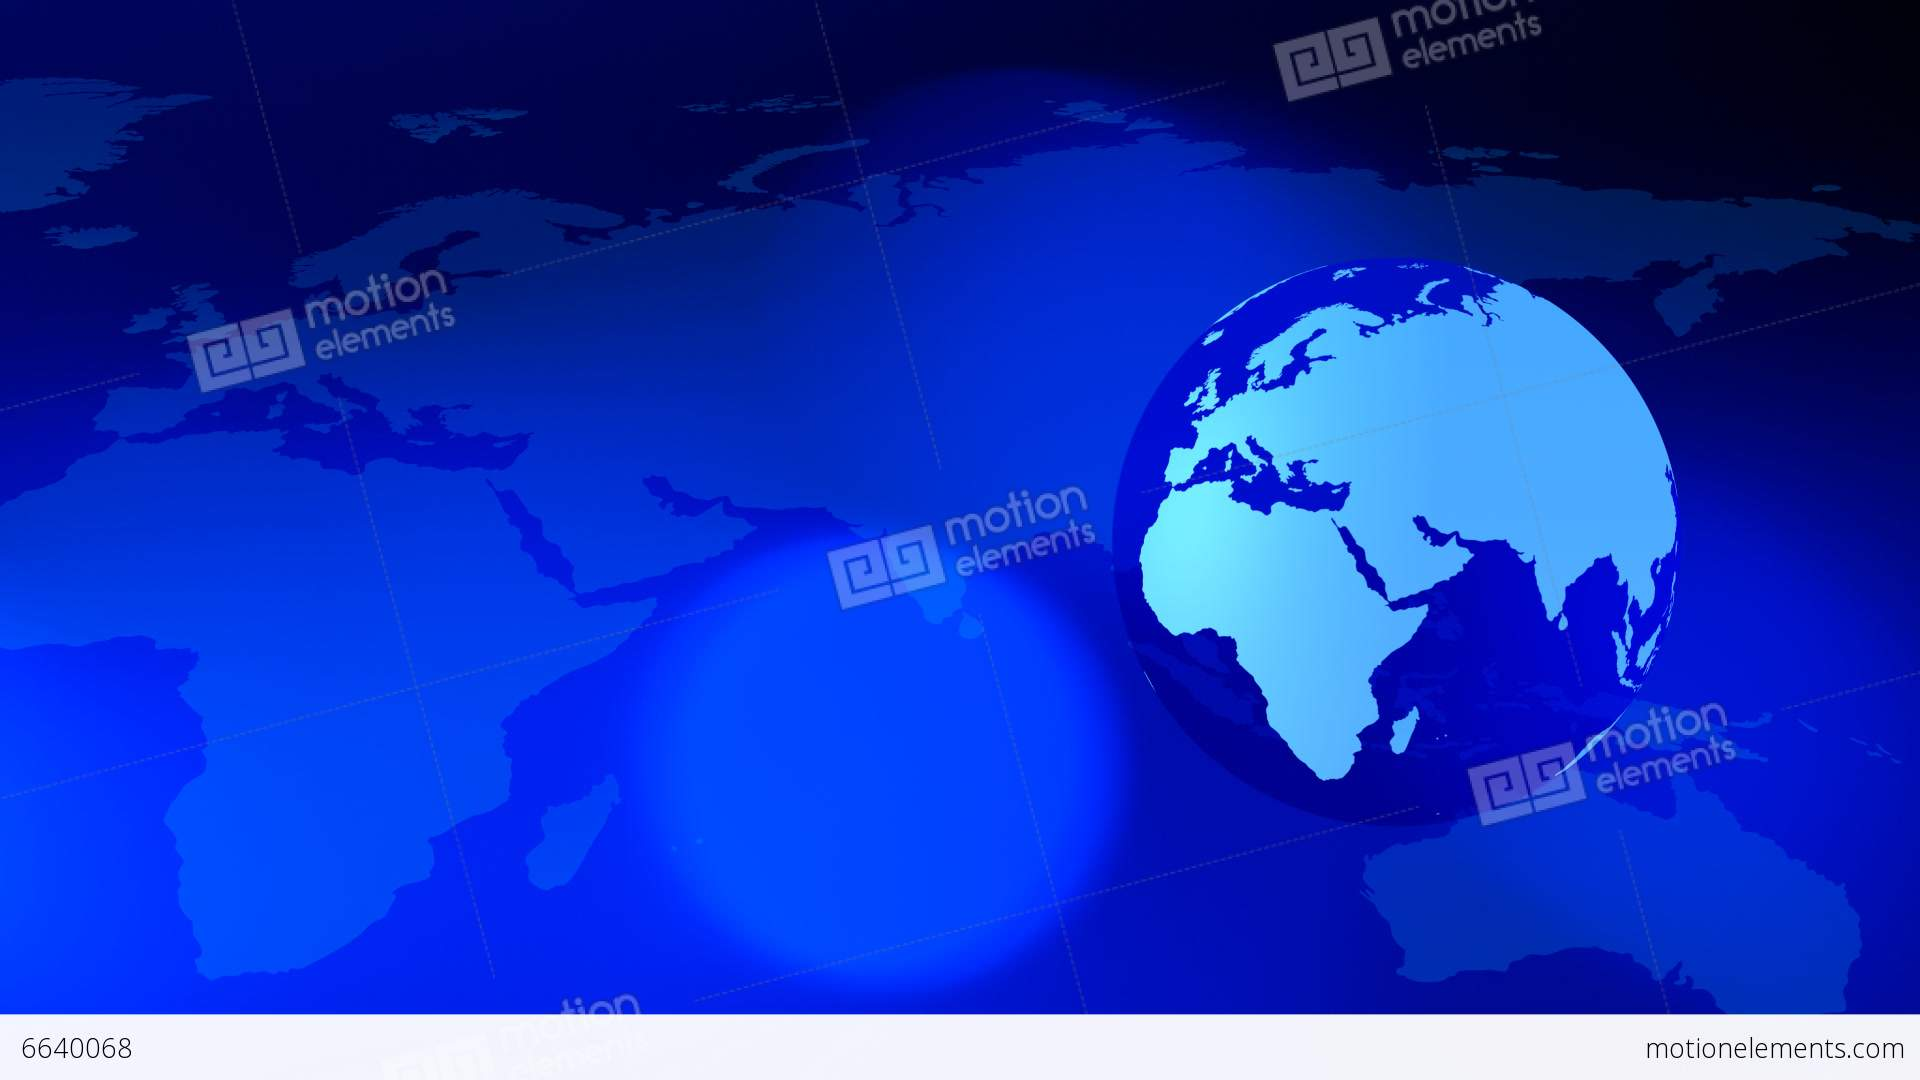 News rotating world and map backgrounds stock animation 6640068 news rotating world and map backgrounds stock video footage gumiabroncs Images